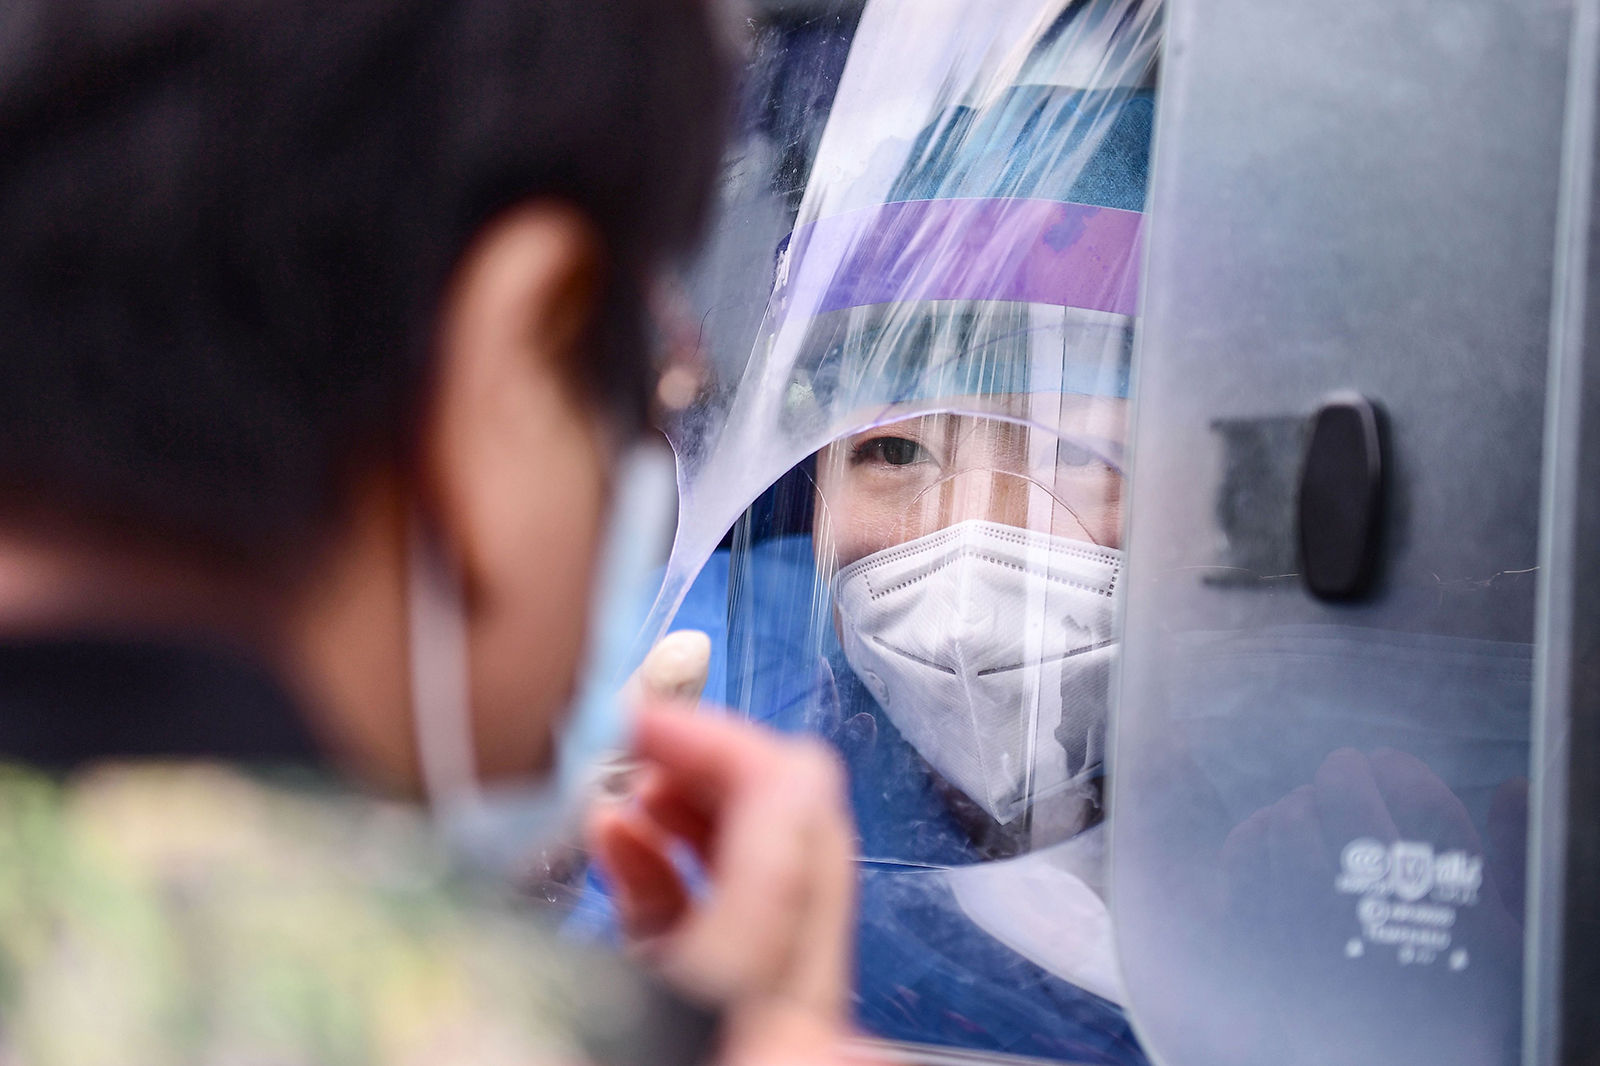 A health worker carries out a Covid-19 test on a resident in a testing vehicle in Shenyang in China's northeastern Liaoning province on July 29.